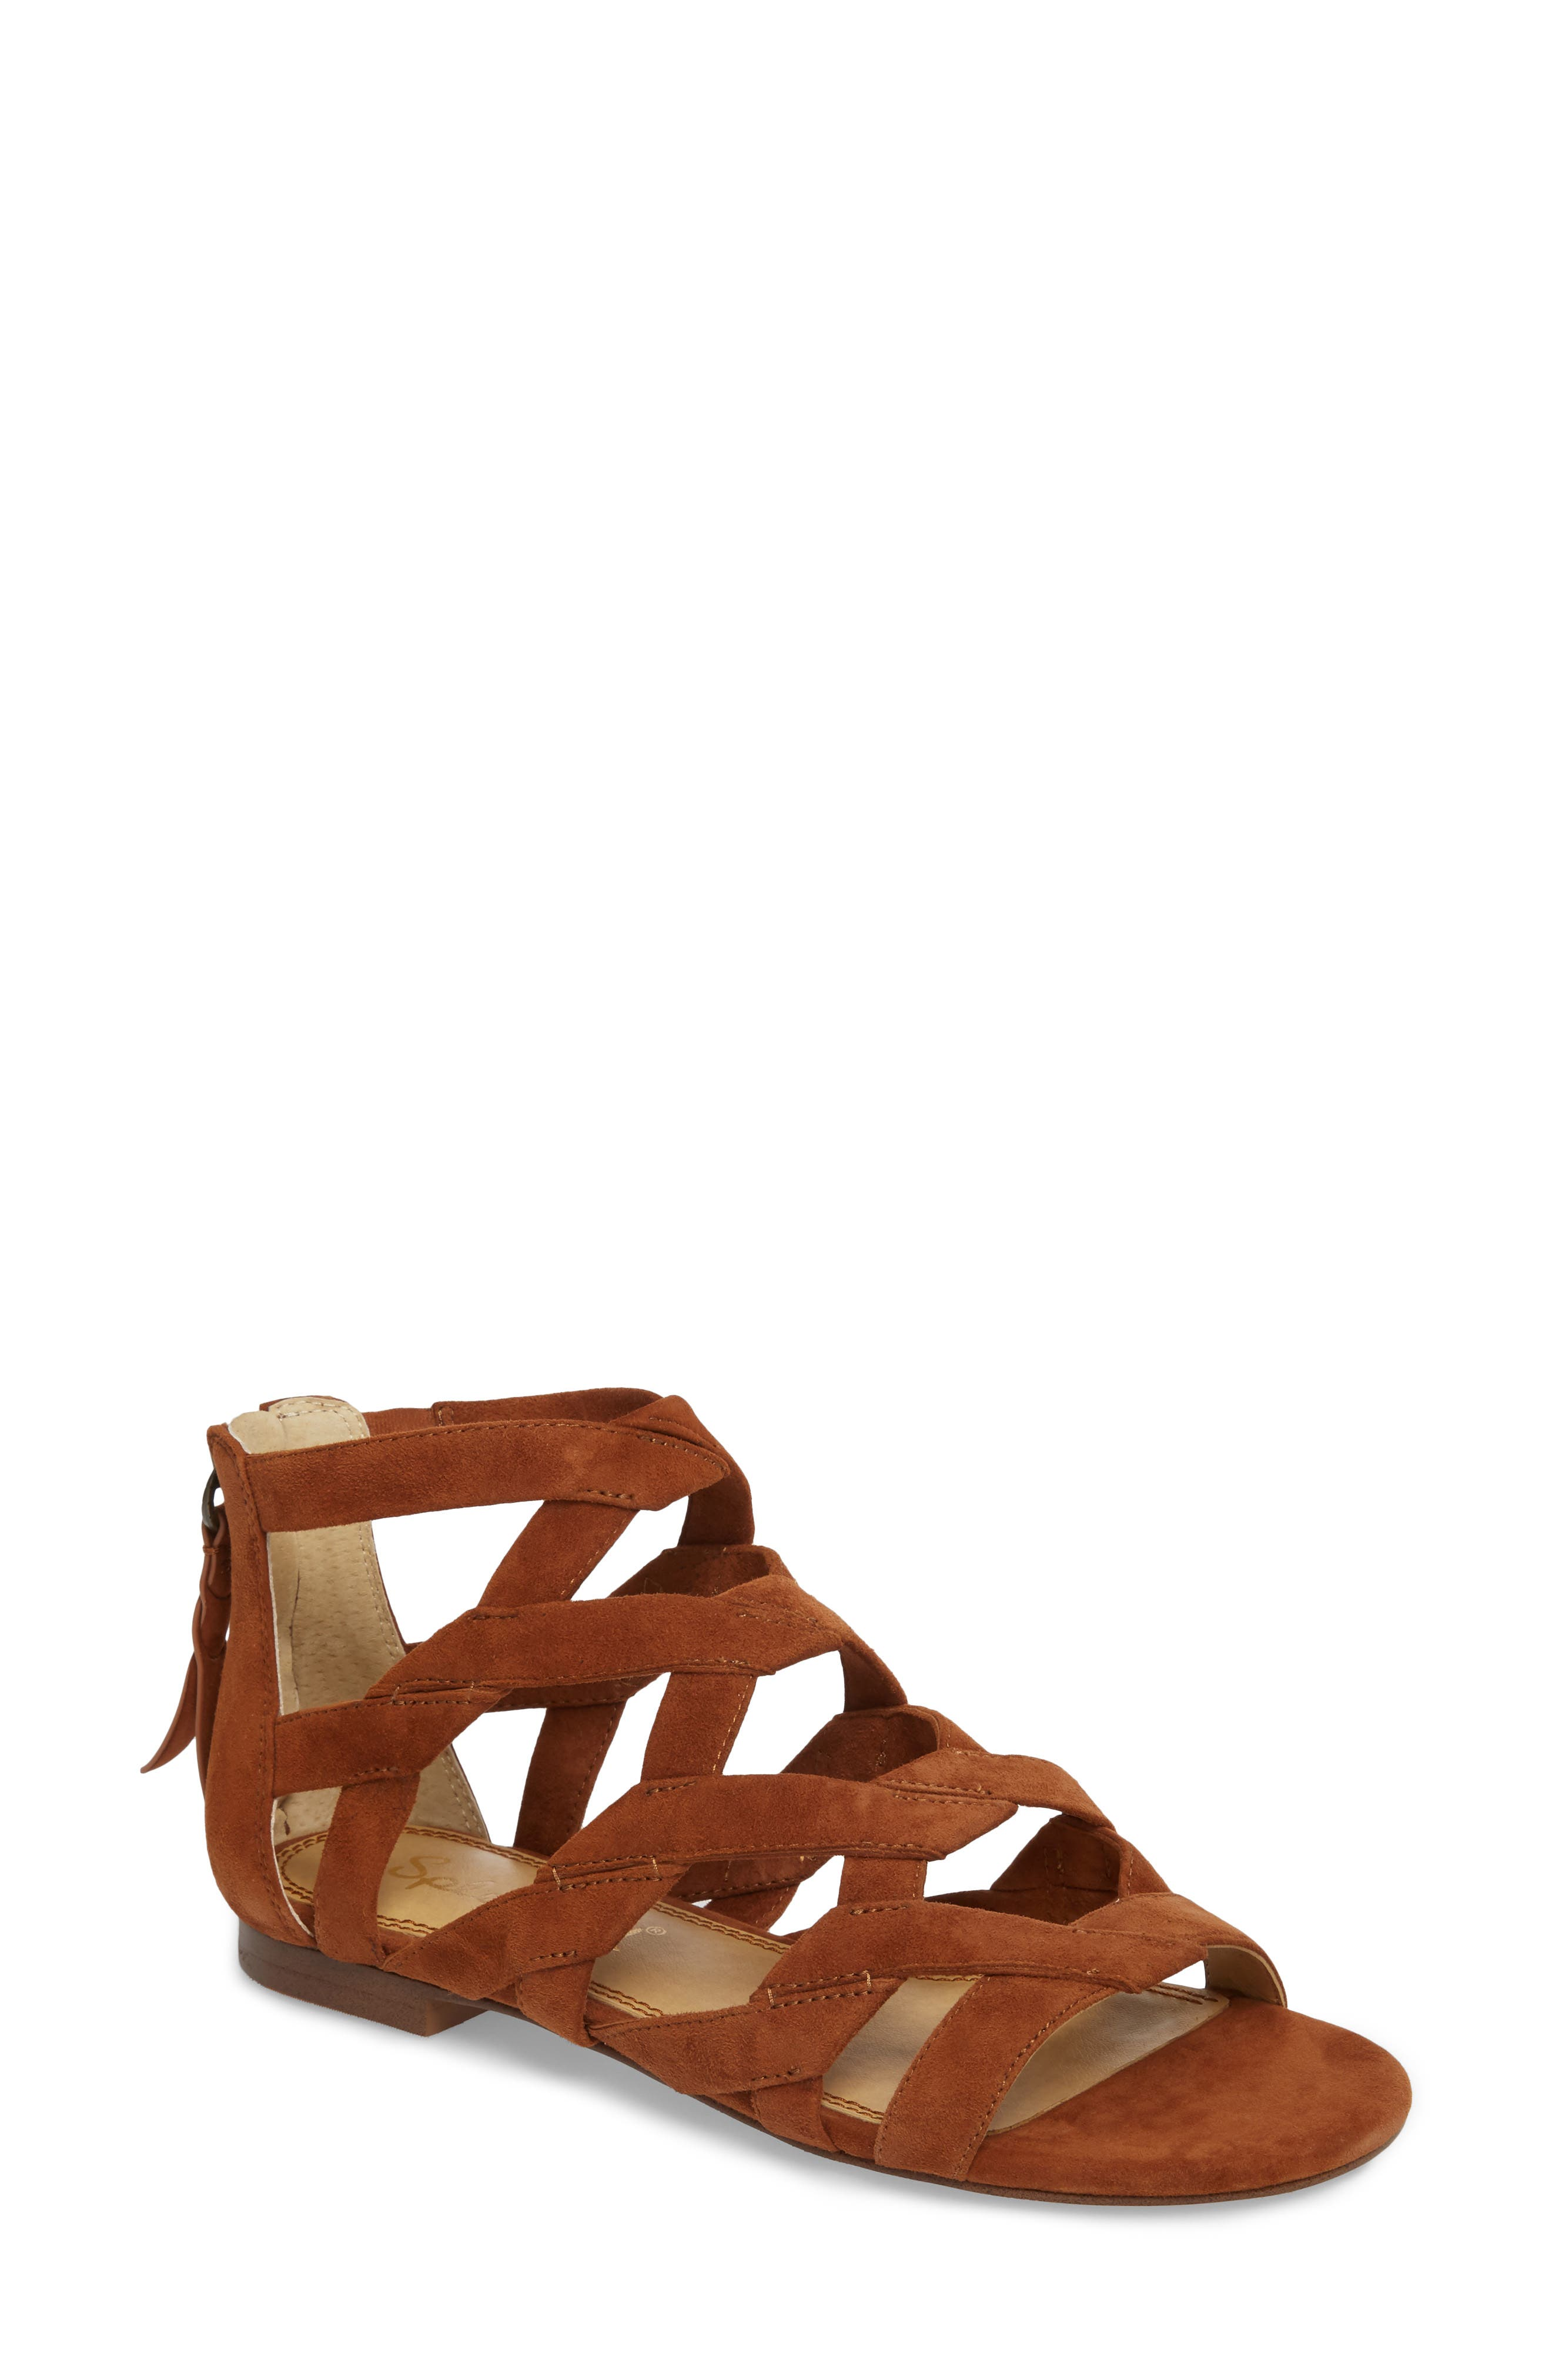 Barrett Mid Top Cage Sandal,                         Main,                         color, Caramel Suede